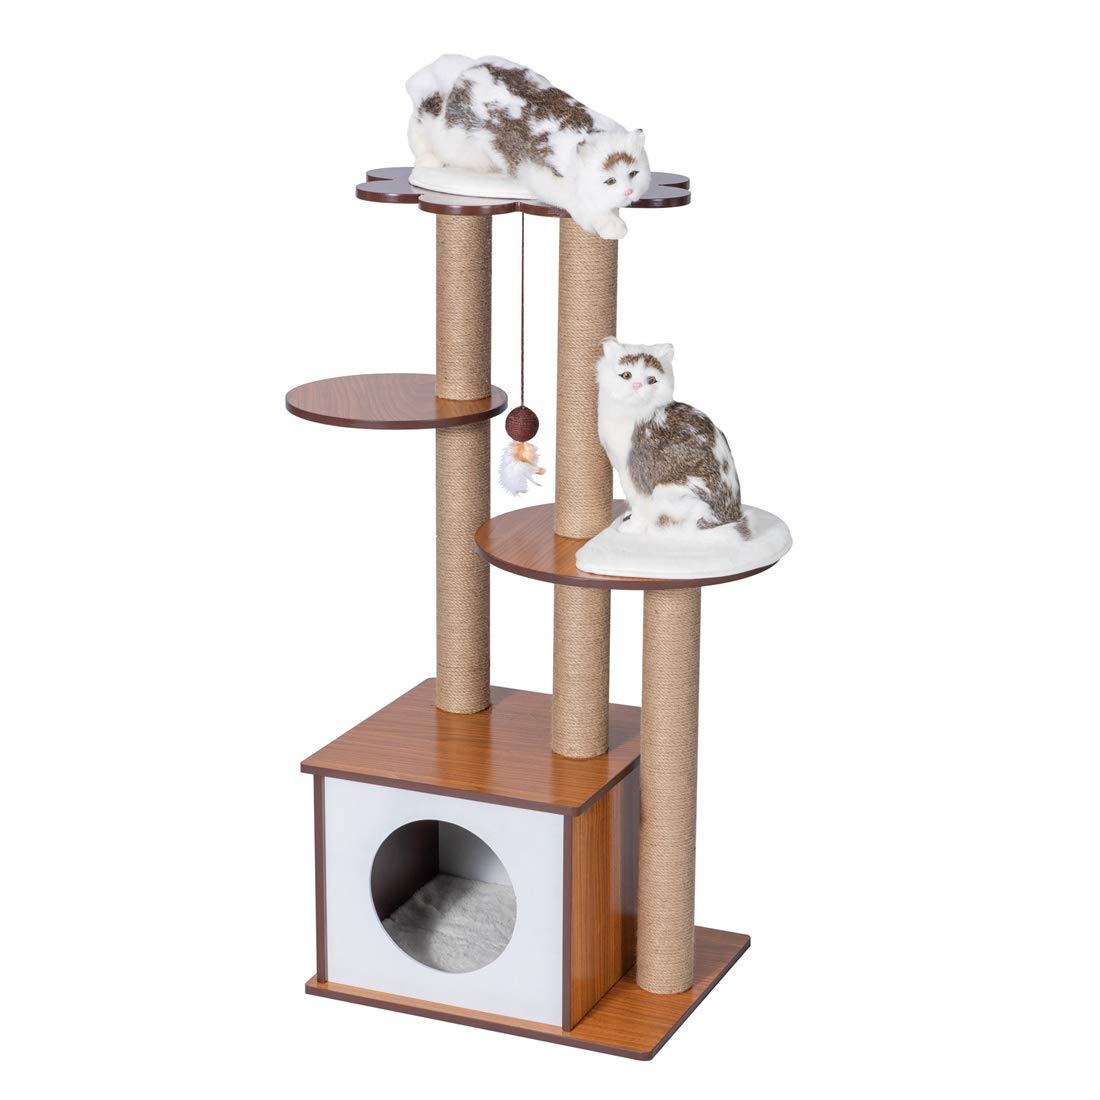 Good Life 42'' Modern Style Wood Deluxe Cat Tree Furniture Kitten House Condo for Small to Middle Pet Cats Climbing Play Tower with Scratching Post PET596 by GOOD LIFE USA